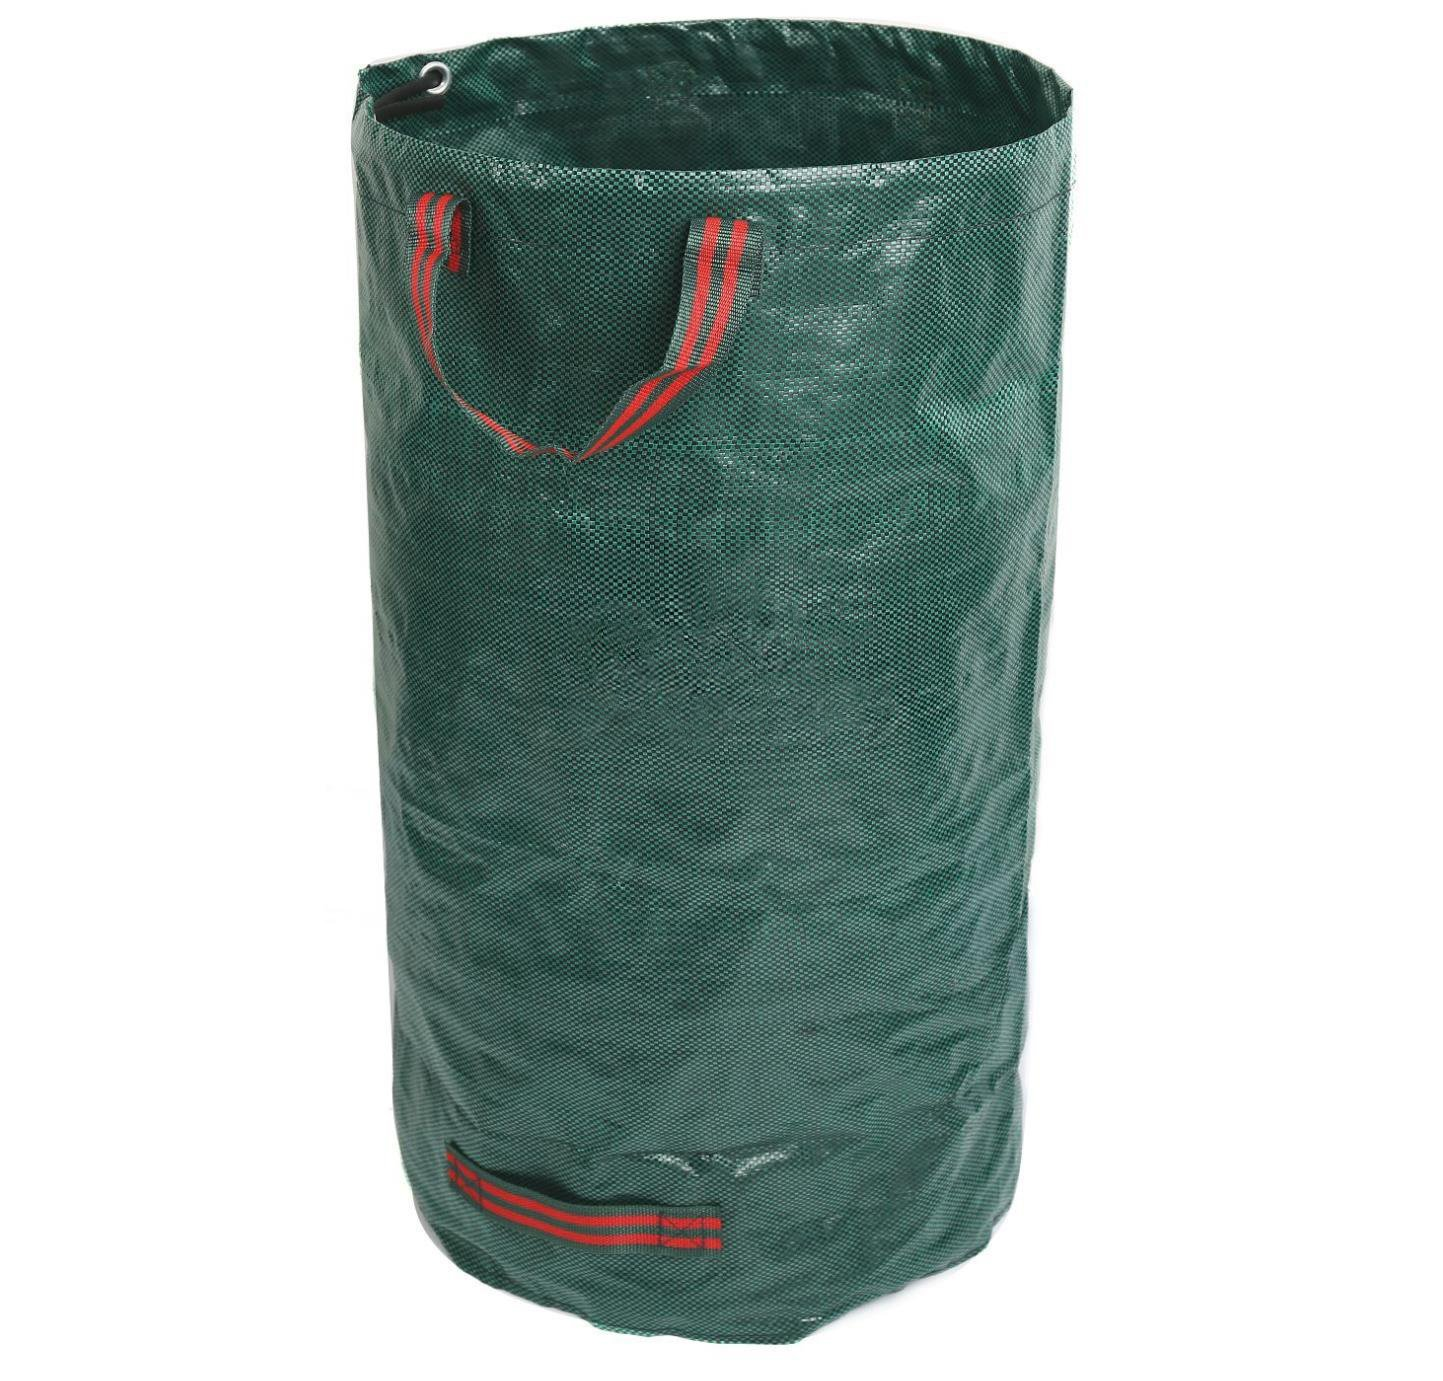 GiovaneDora 272L Garden Waste Bags, Waterproof Heavy Duty Large Refuse Sacks with Handles, Foldable and Reusable (1) YANGMING